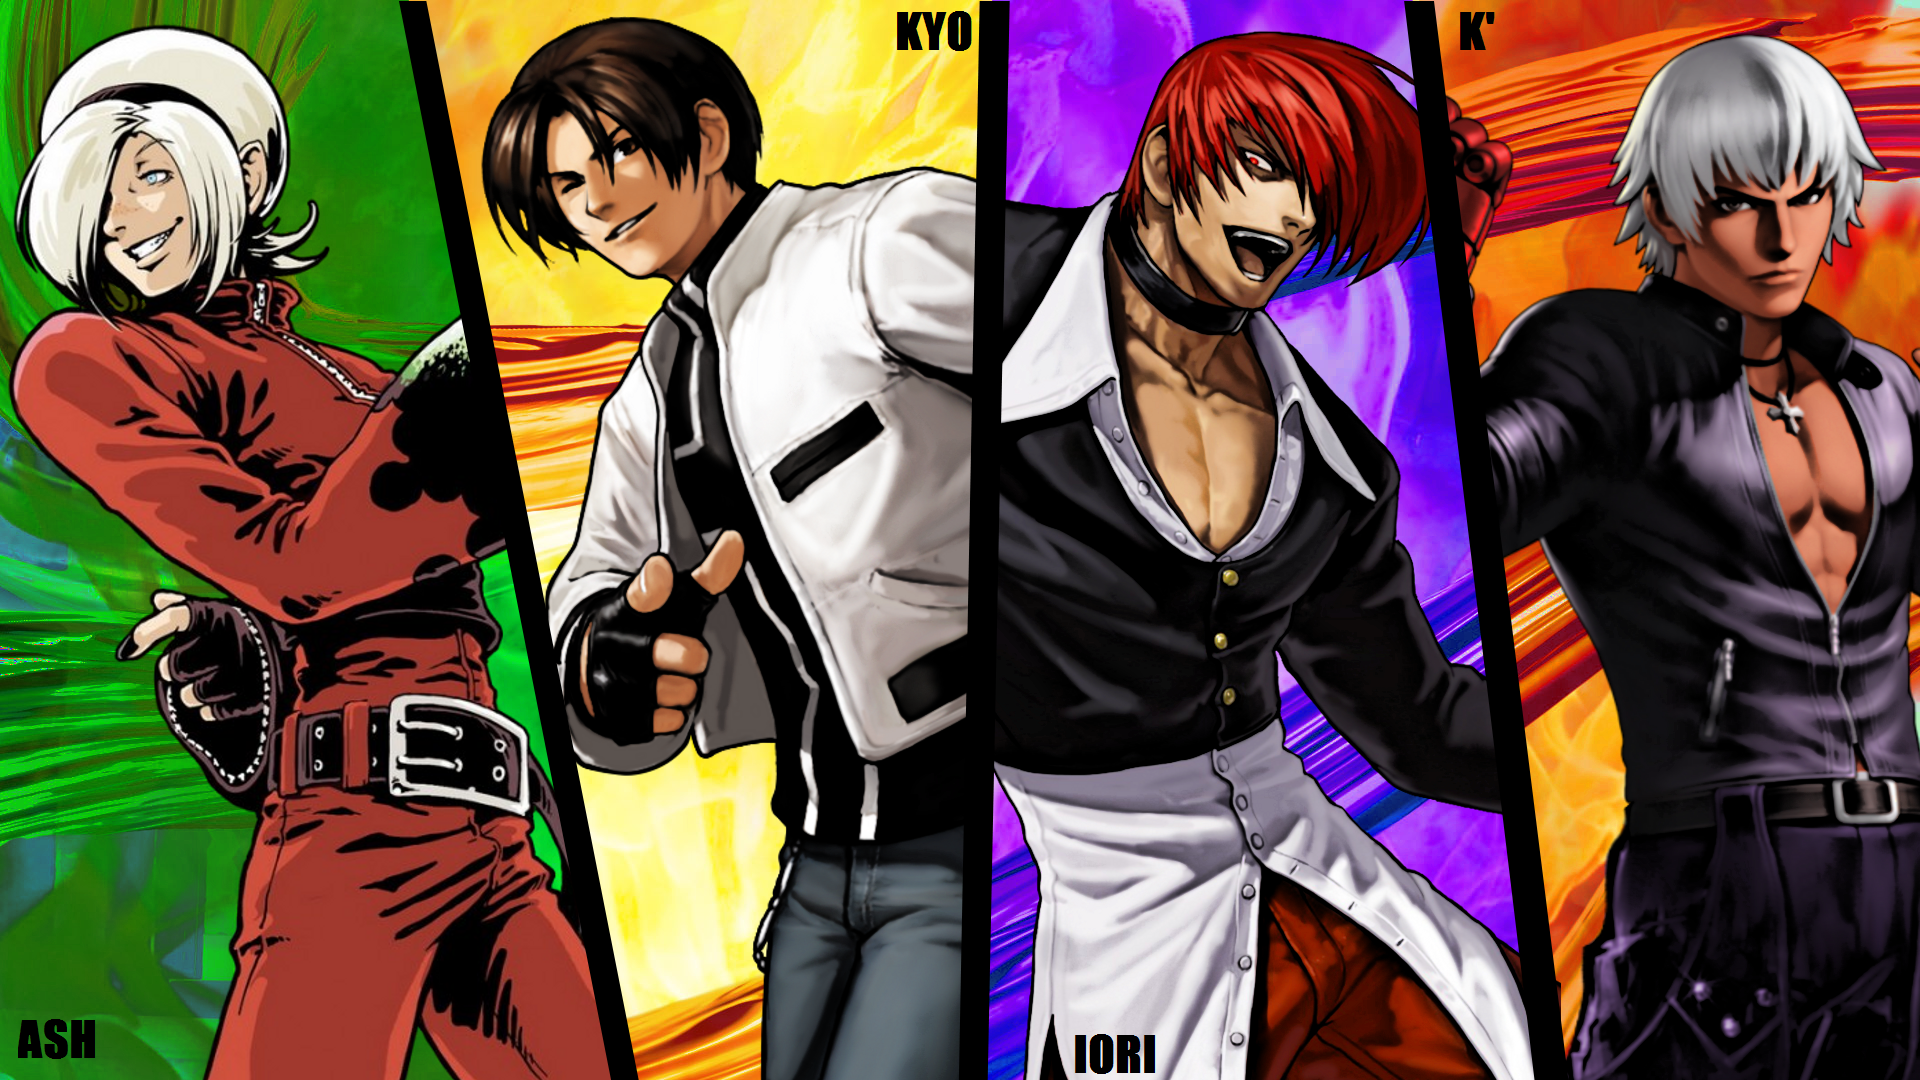 King of fighters kyo vs iori